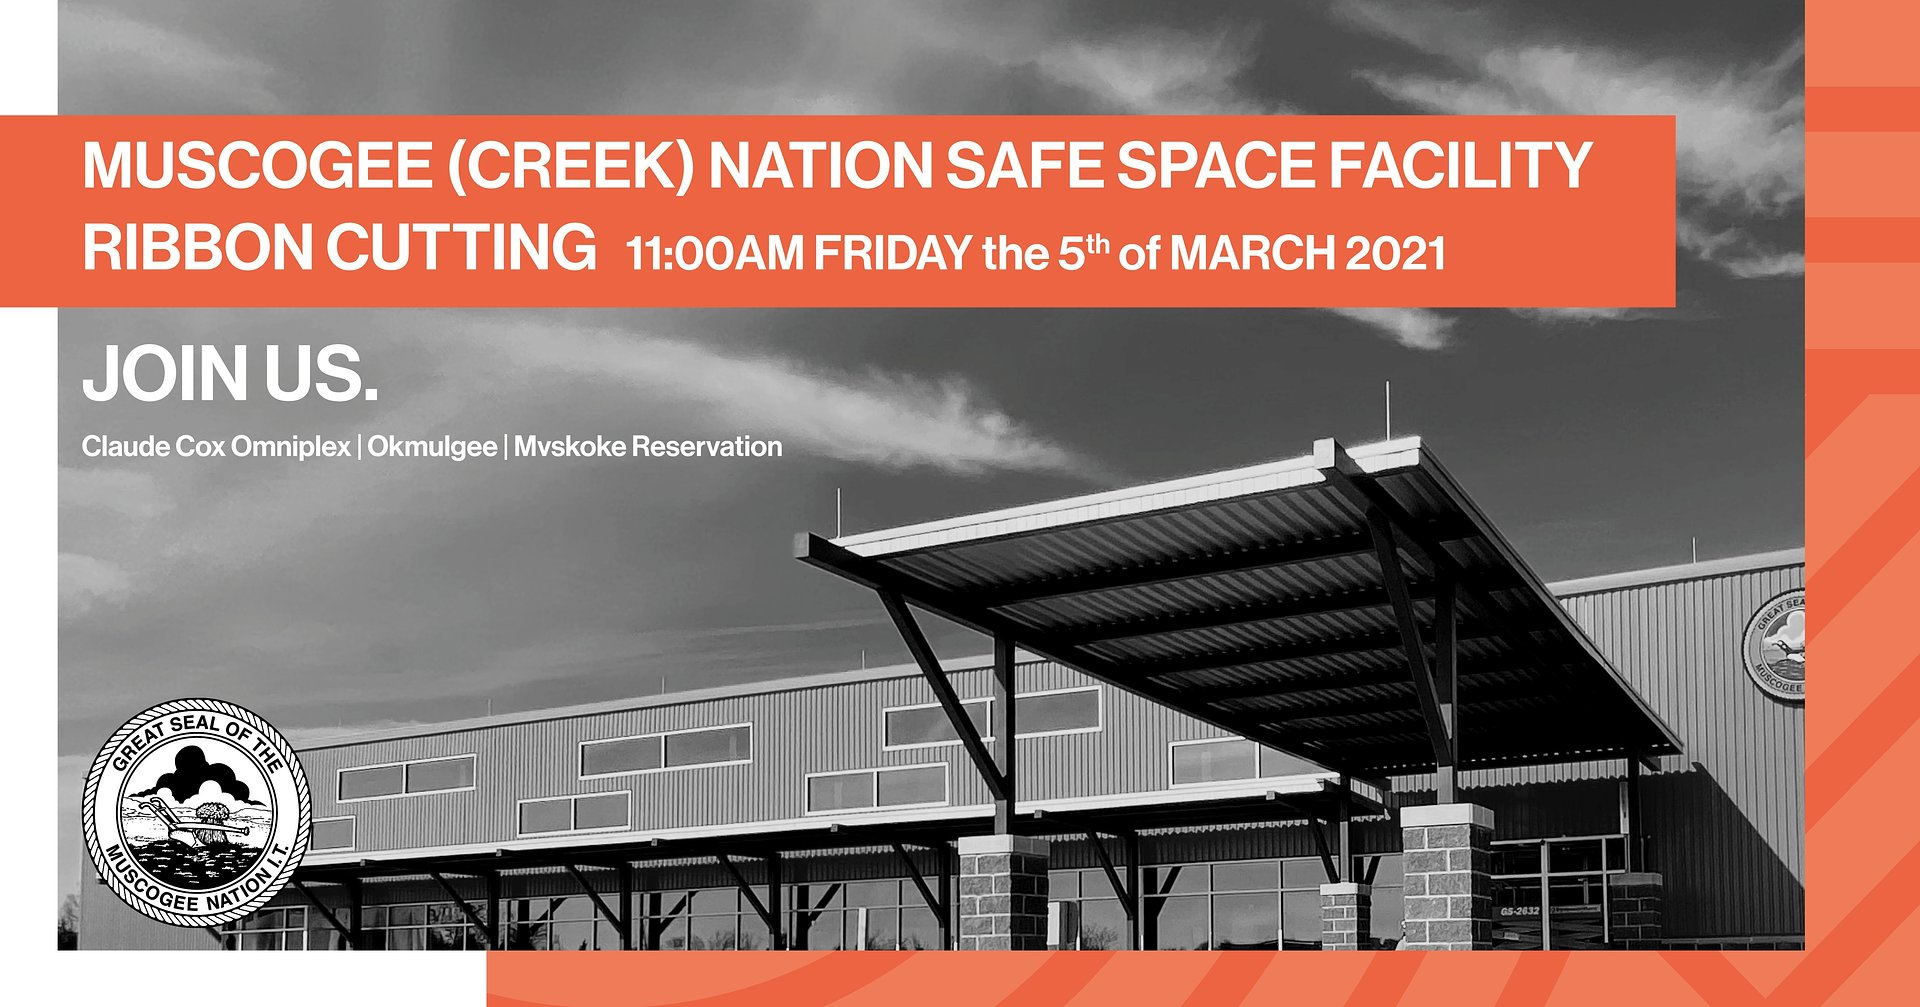 Muscogee Nation Safe Space Facility Ribbon-cutting Ceremony